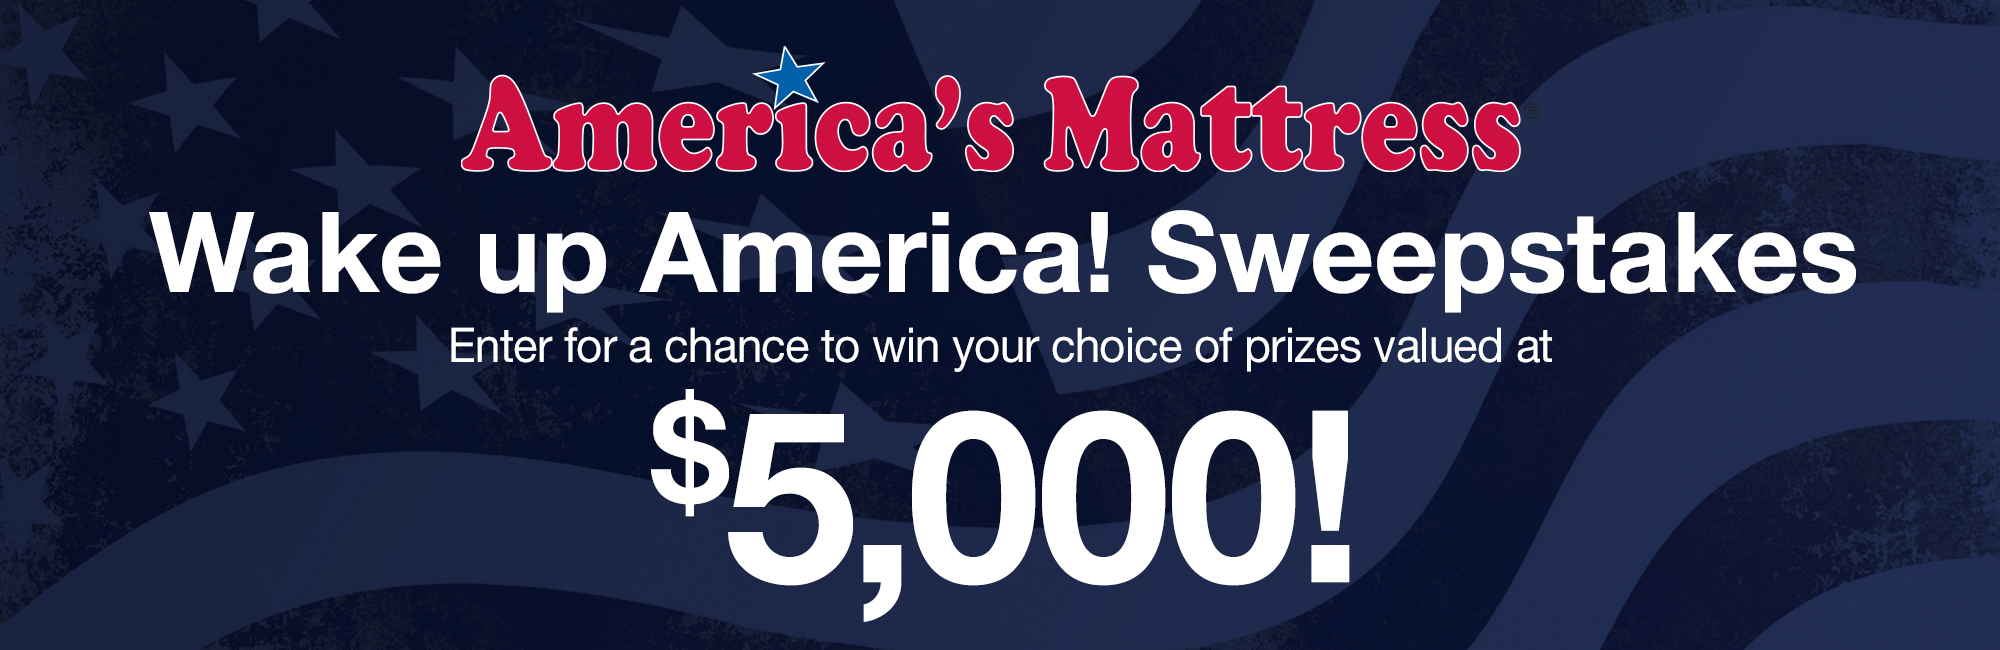 Wake up America Sweepstakes